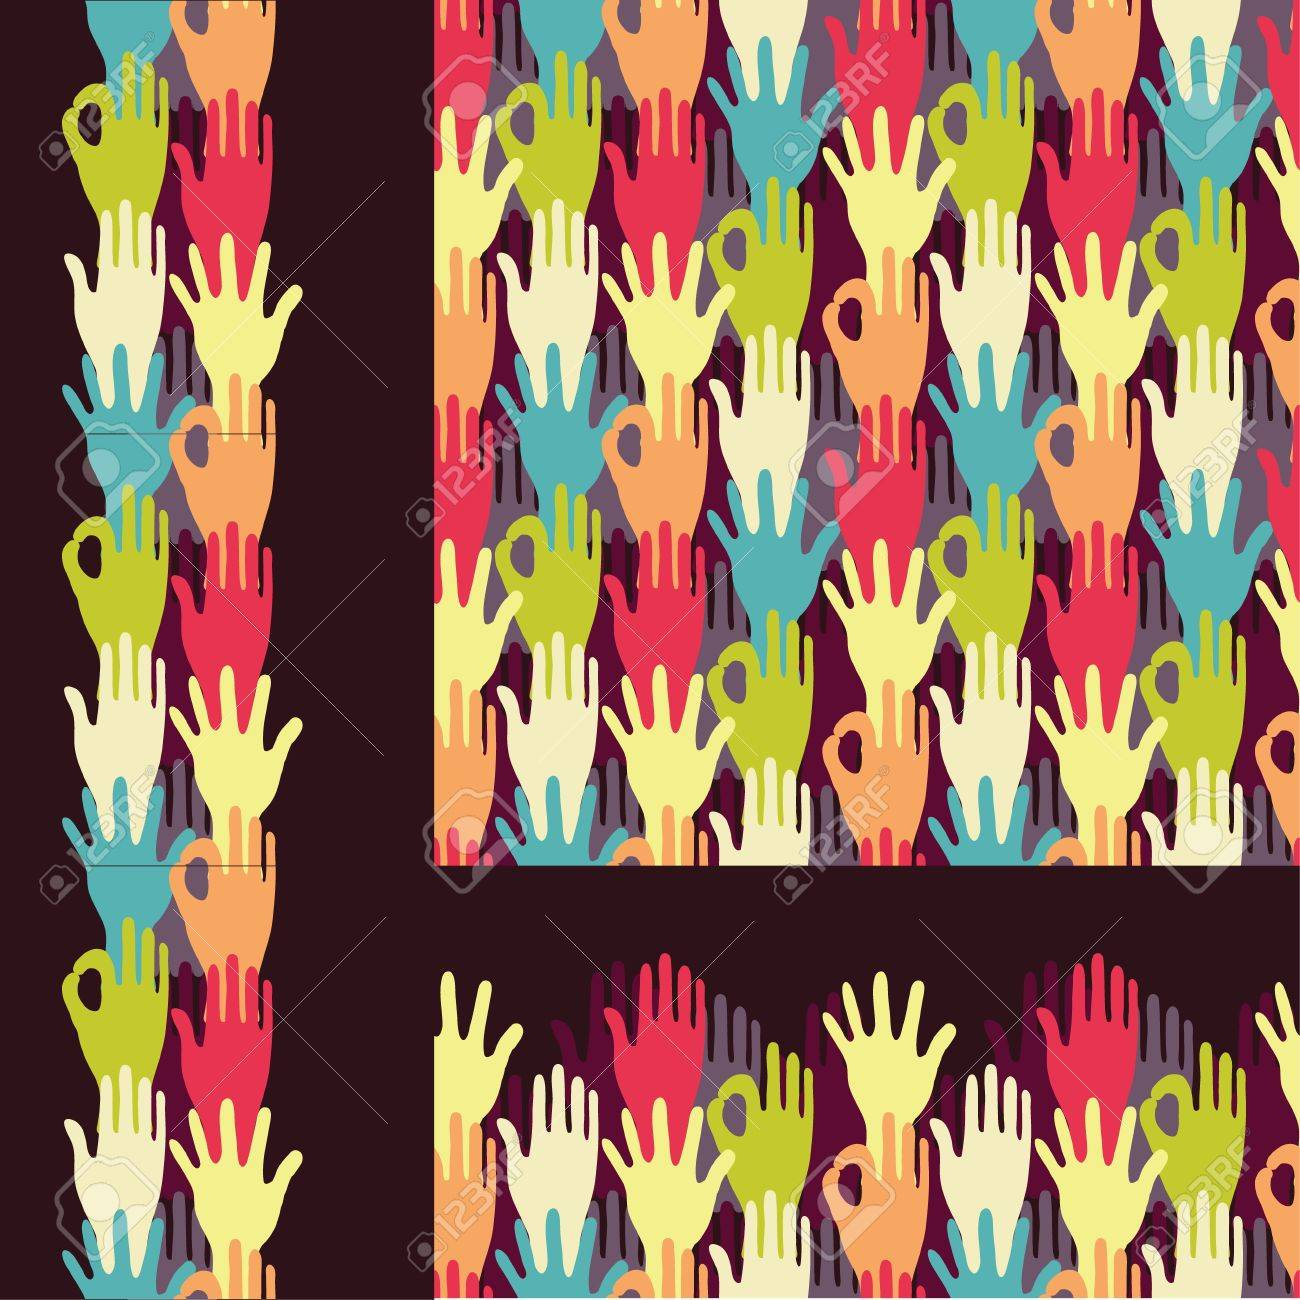 Set of hands in the crowd seamless pattern backgrounds and borders Stock Vector - 17965938